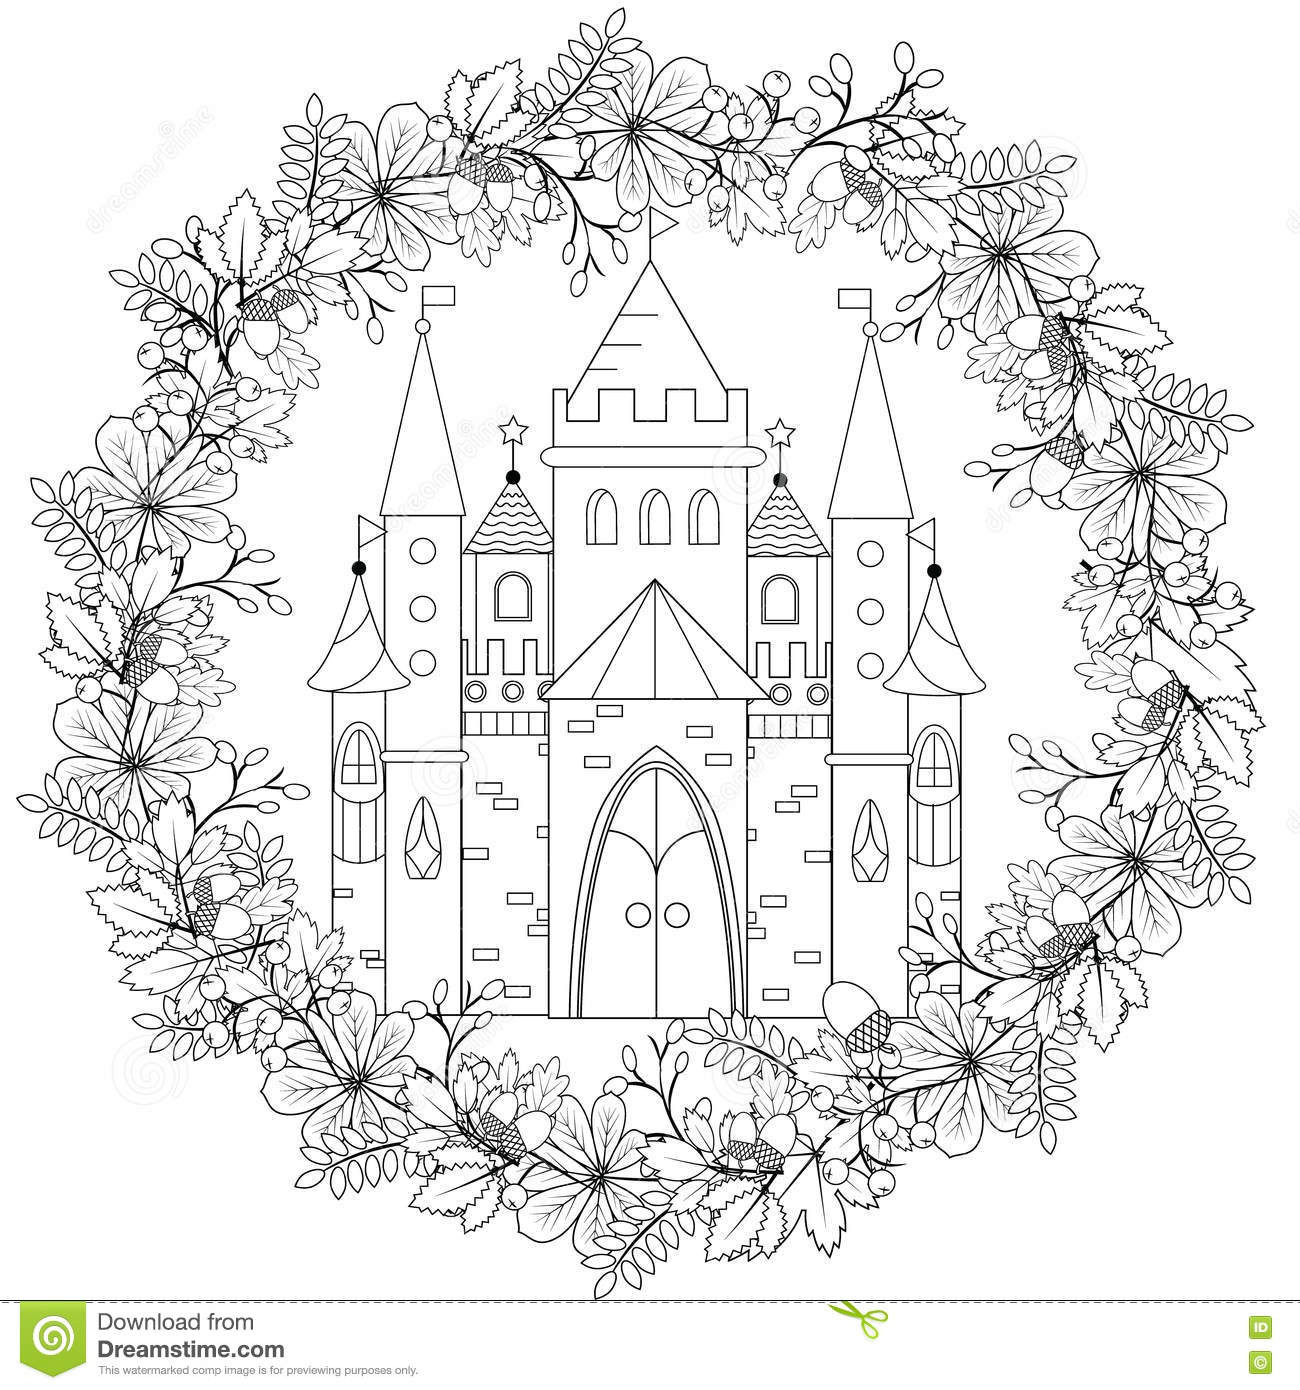 Best ideas about Therapeutic Coloring Pages For Kids . Save or Pin Relaxing Coloring Page With Fairy Castle In Forest Wreath Now.